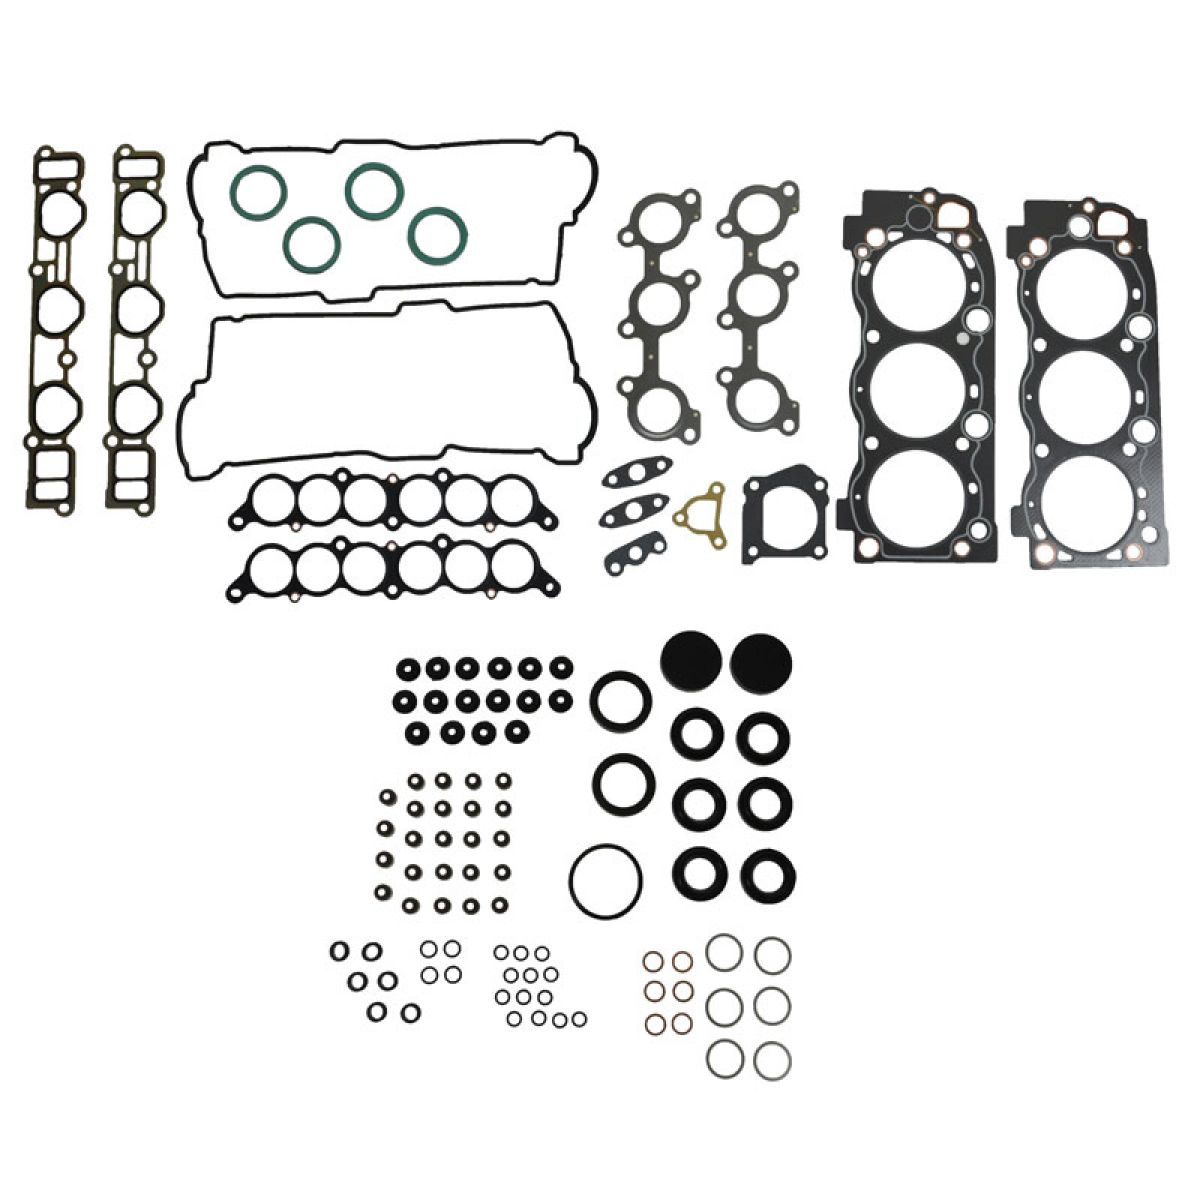 Engine Head Gasket Kit Set For Toyota 4runner Tacoma Tundra T100 Truck 3 4l V6